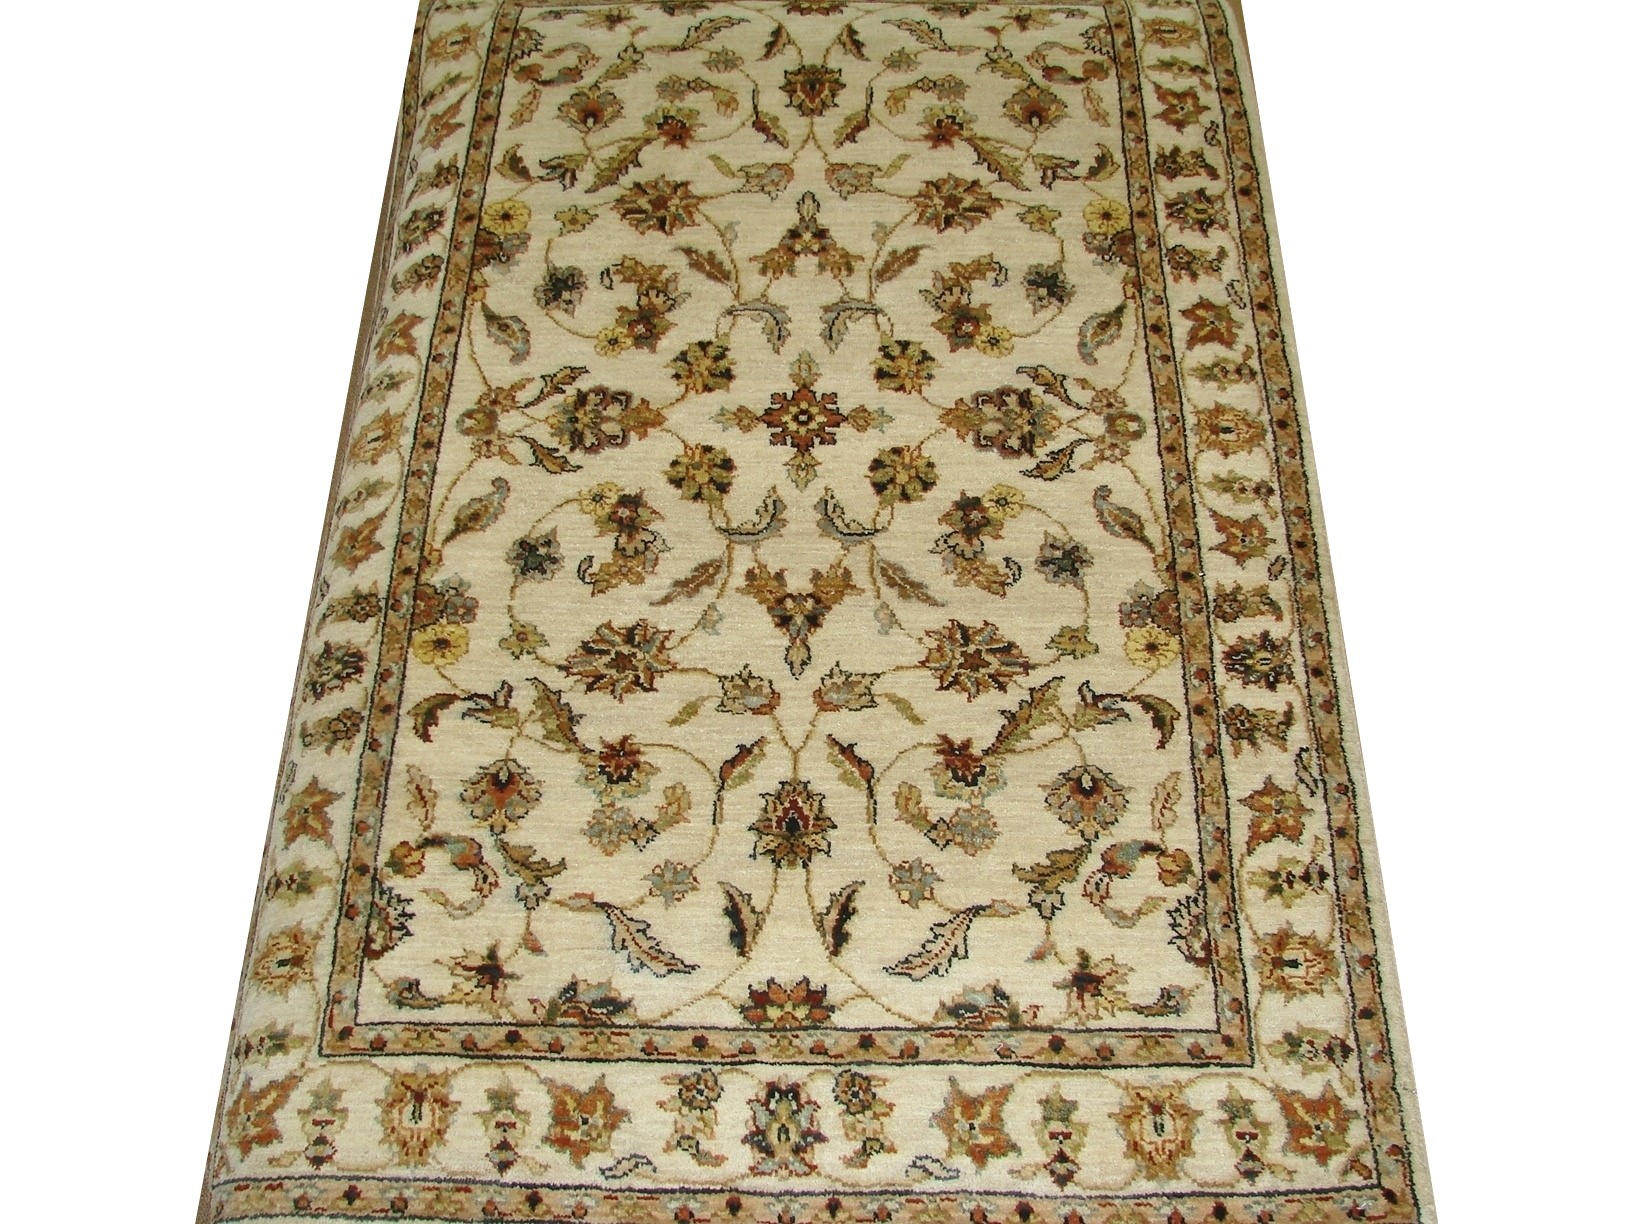 3x5 Traditional Hand Knotted Wool Area Rug - MR15264